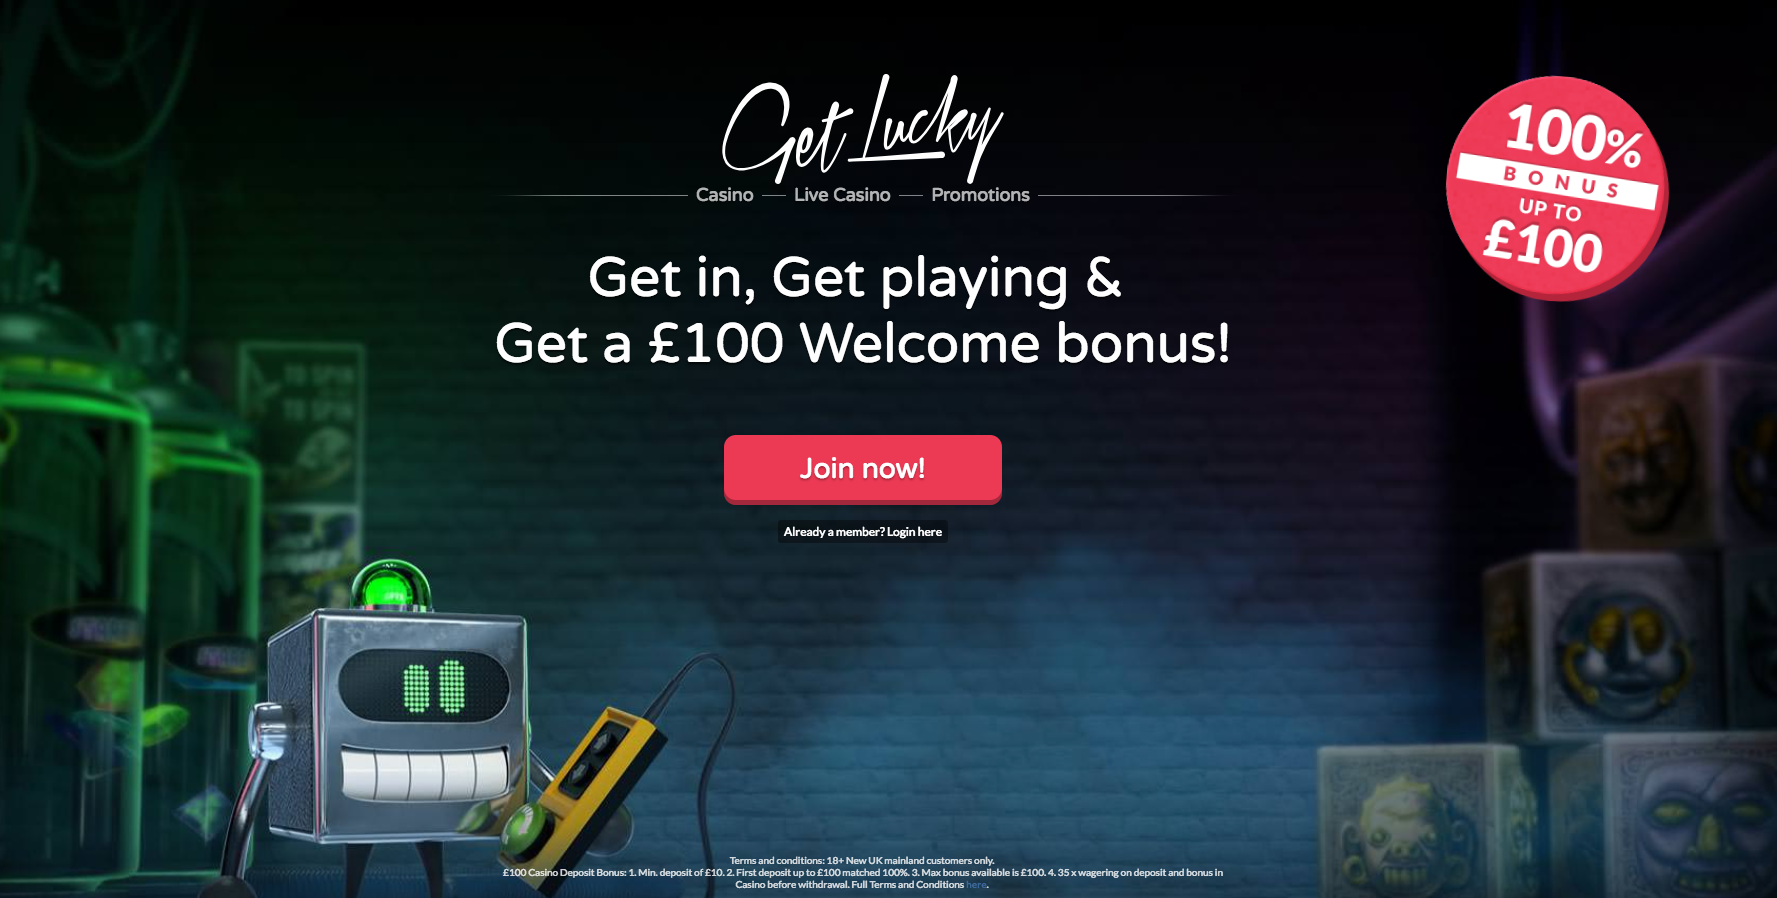 Get Lucky Casino Welcome Bonus